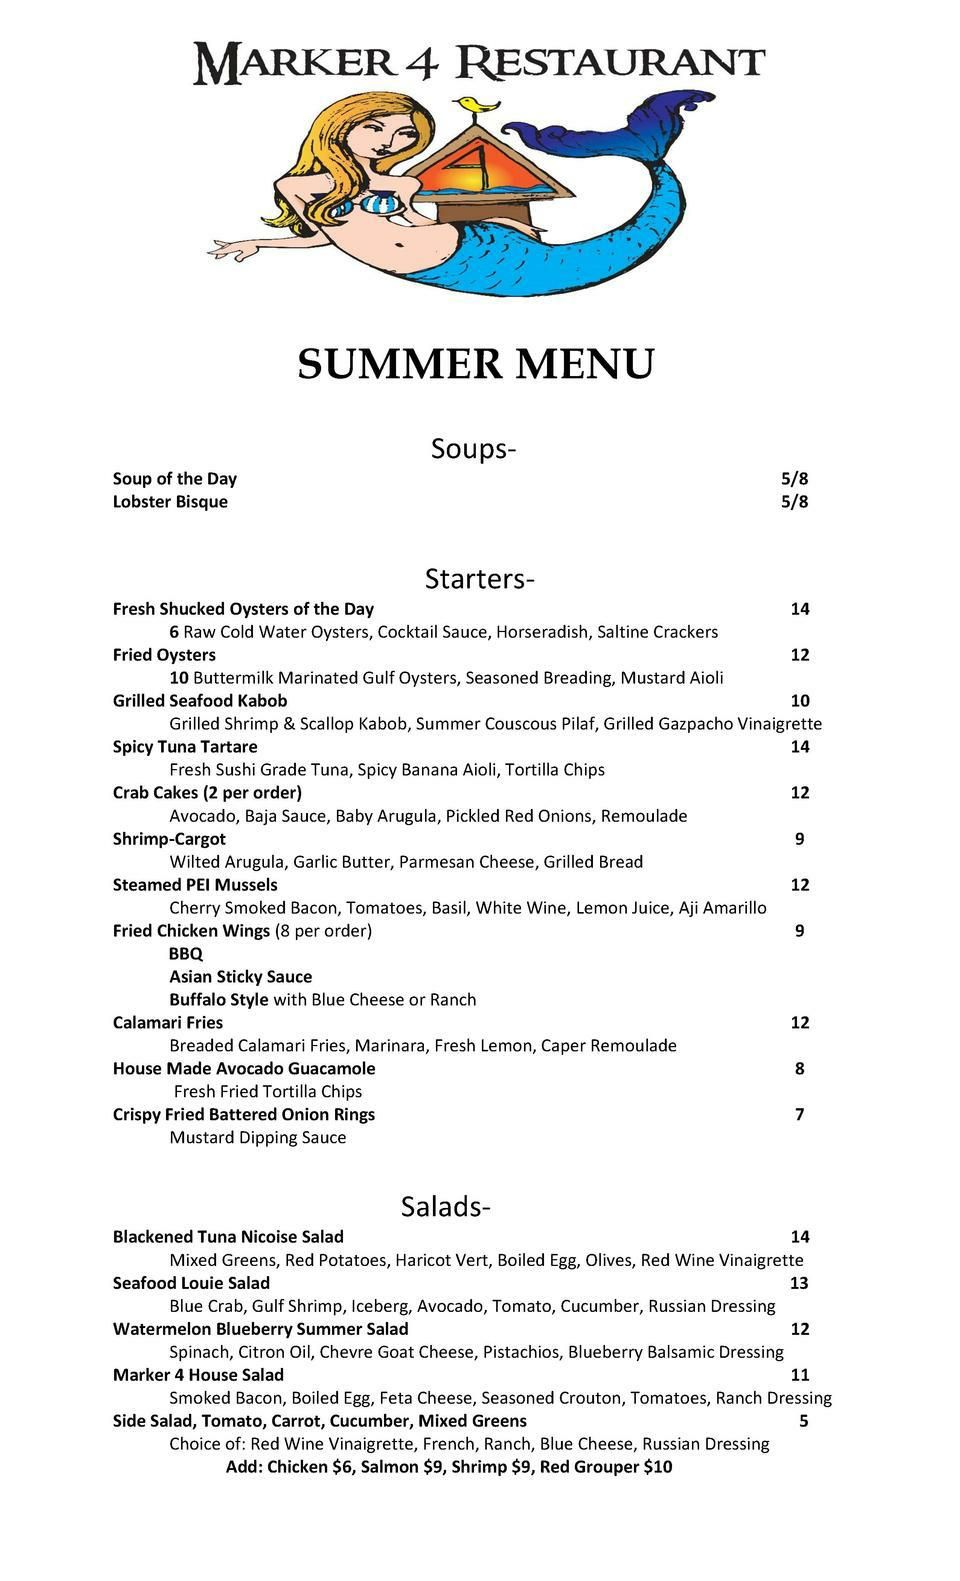 What Should I Have On My Summer Menu